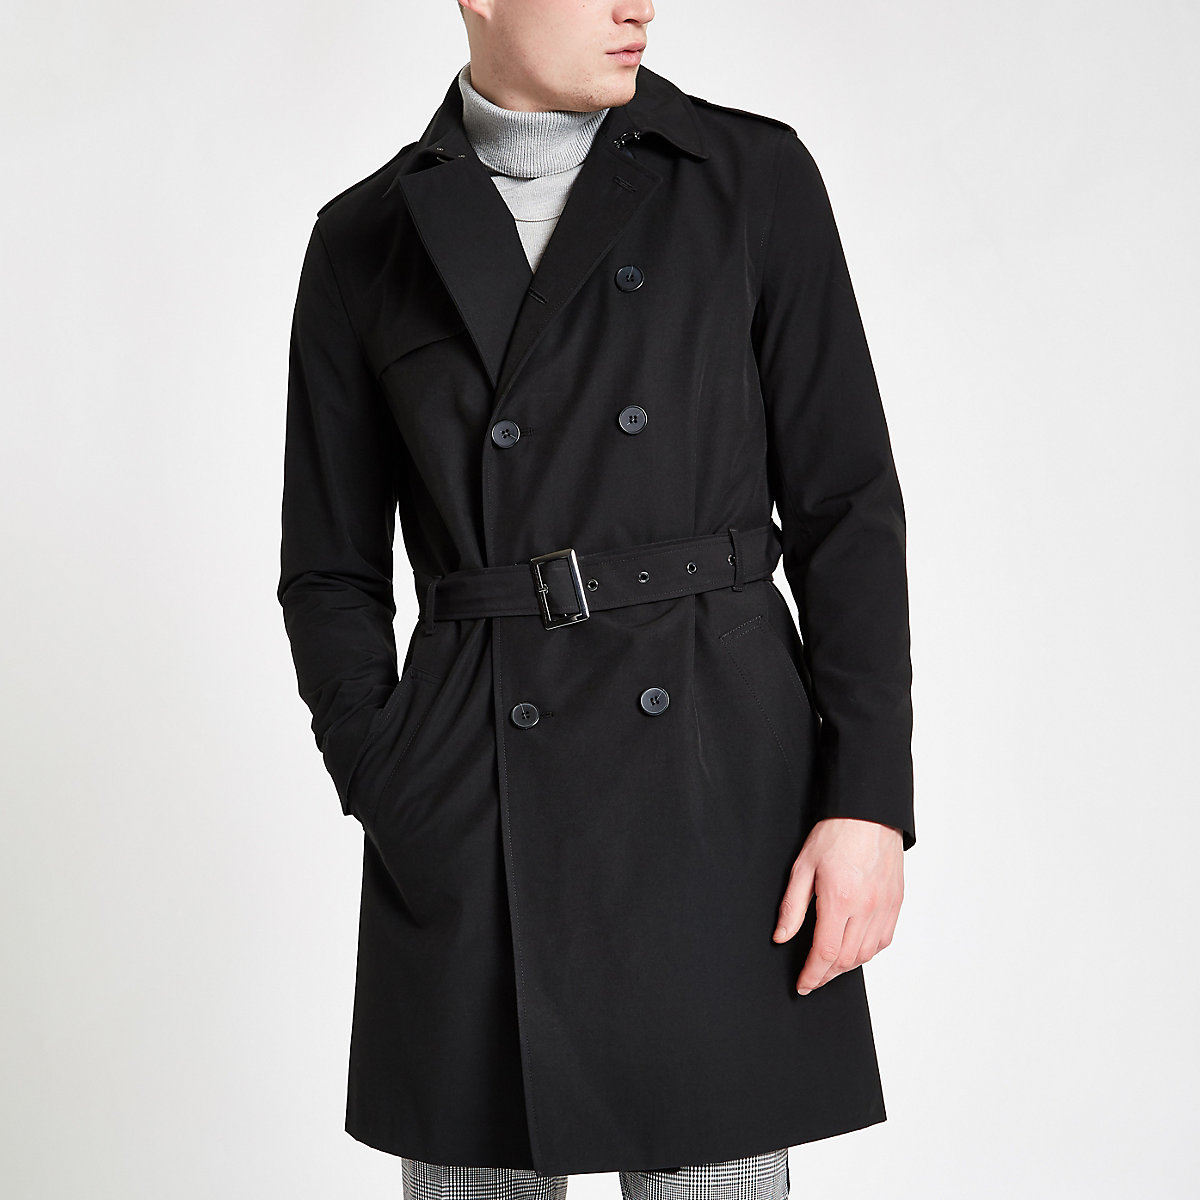 Black double breasted belted trench coat